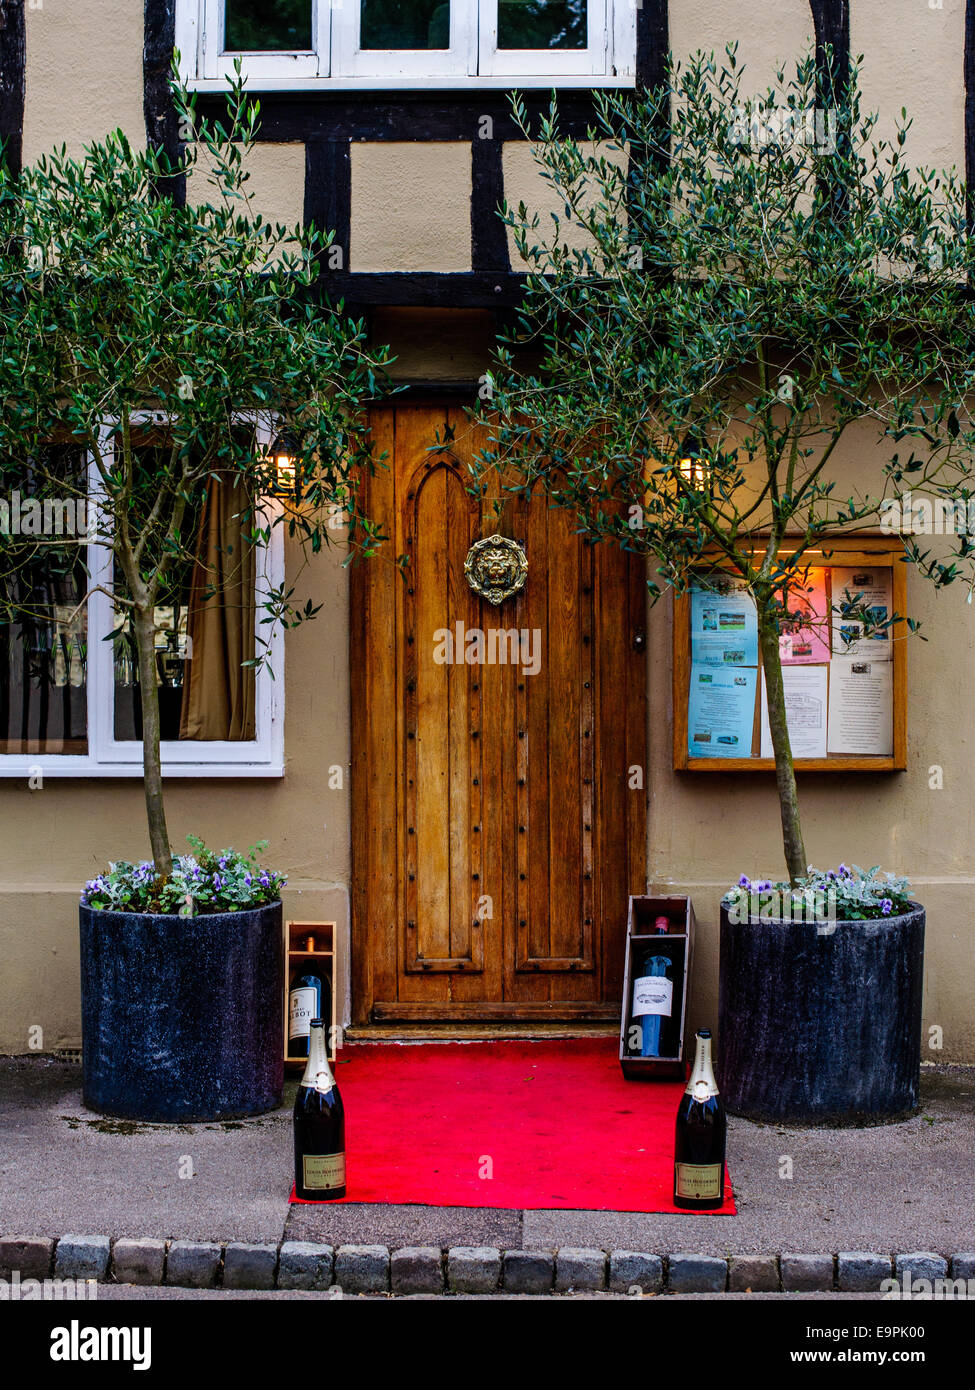 Front wooden door from nice restaurant with red carpet Champagne bottles. Essex - Stock Image